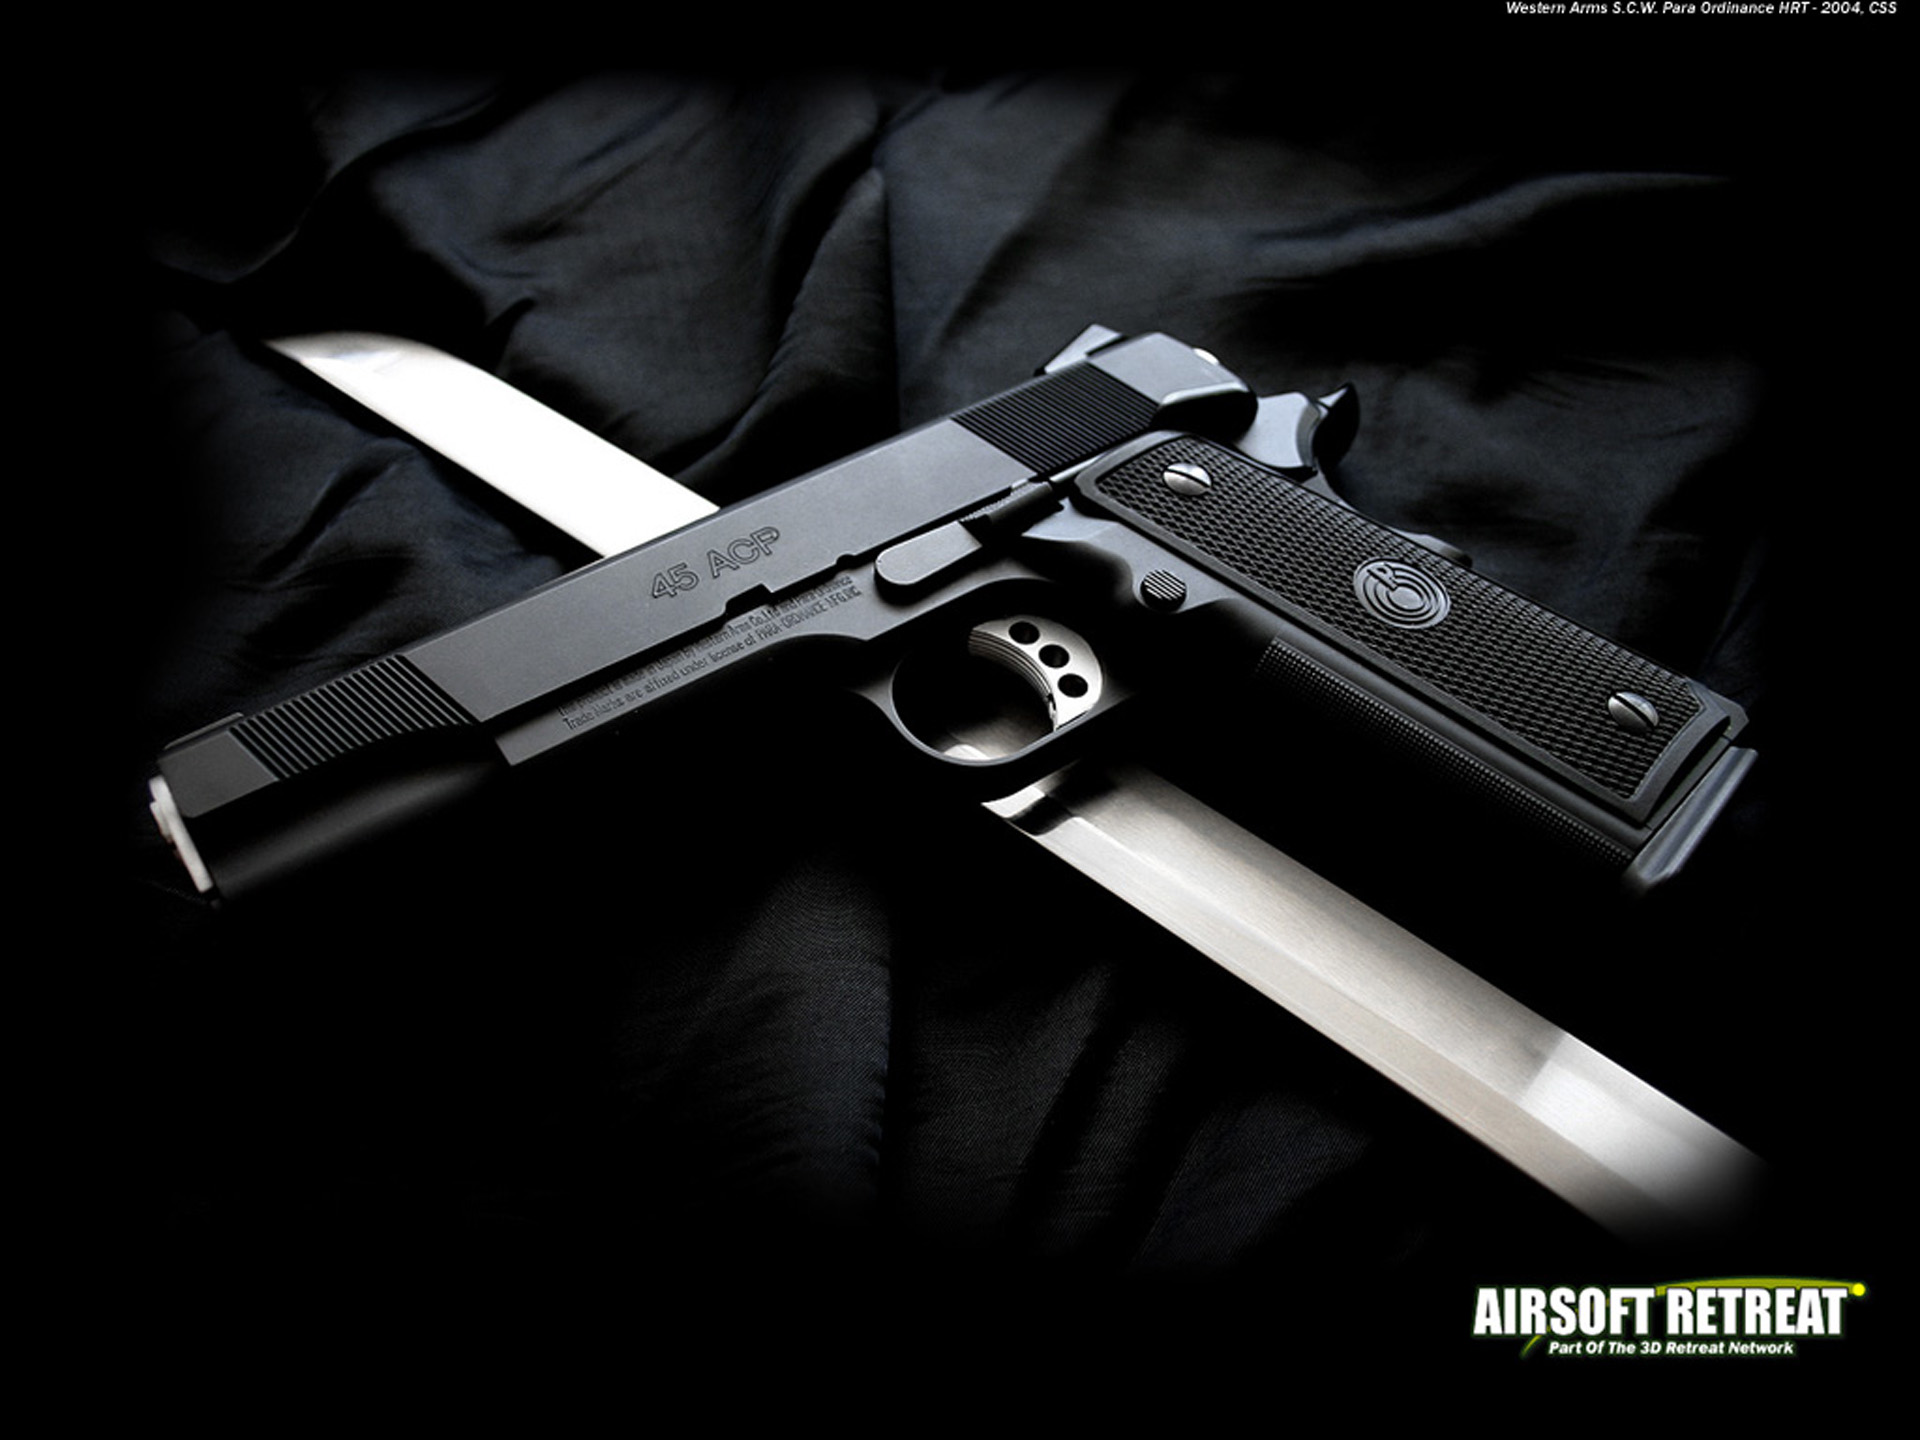 Airsoft Pistol Full HD Wallpaper And Background Image